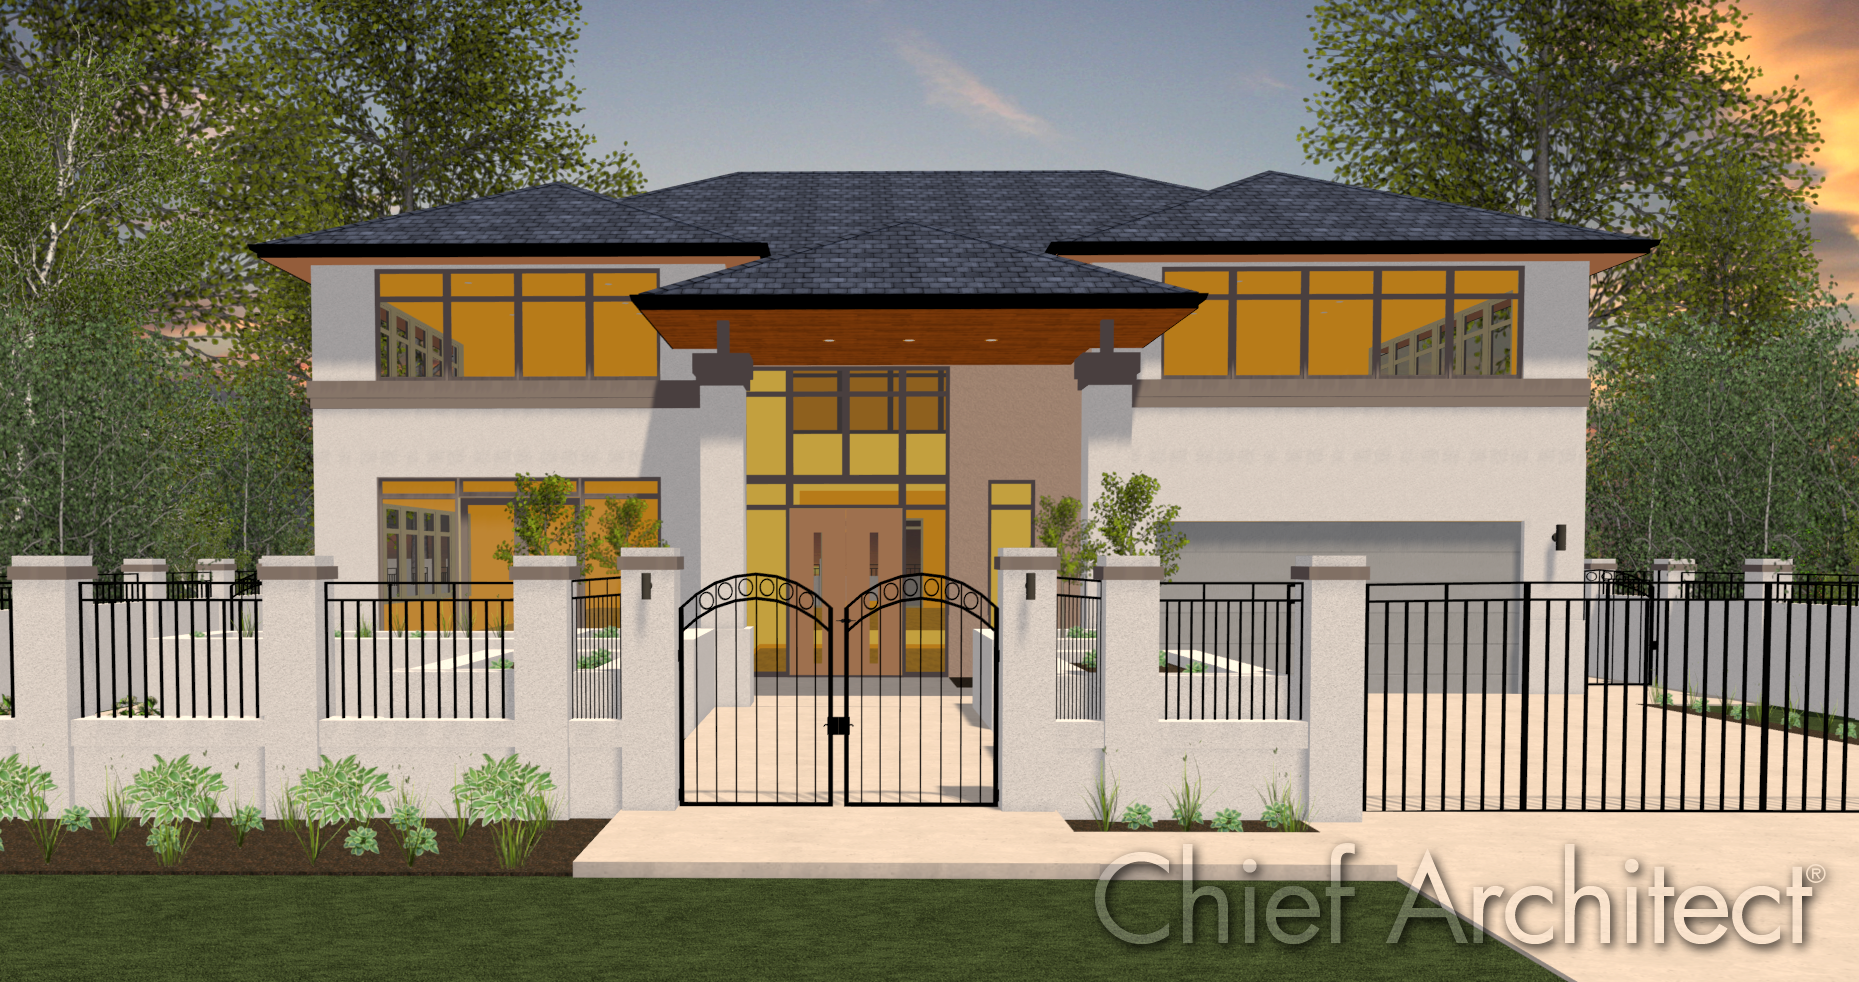 Home Design Color Ideas: PNG HD Of Homes Transparent HD Of Homes.PNG Images.